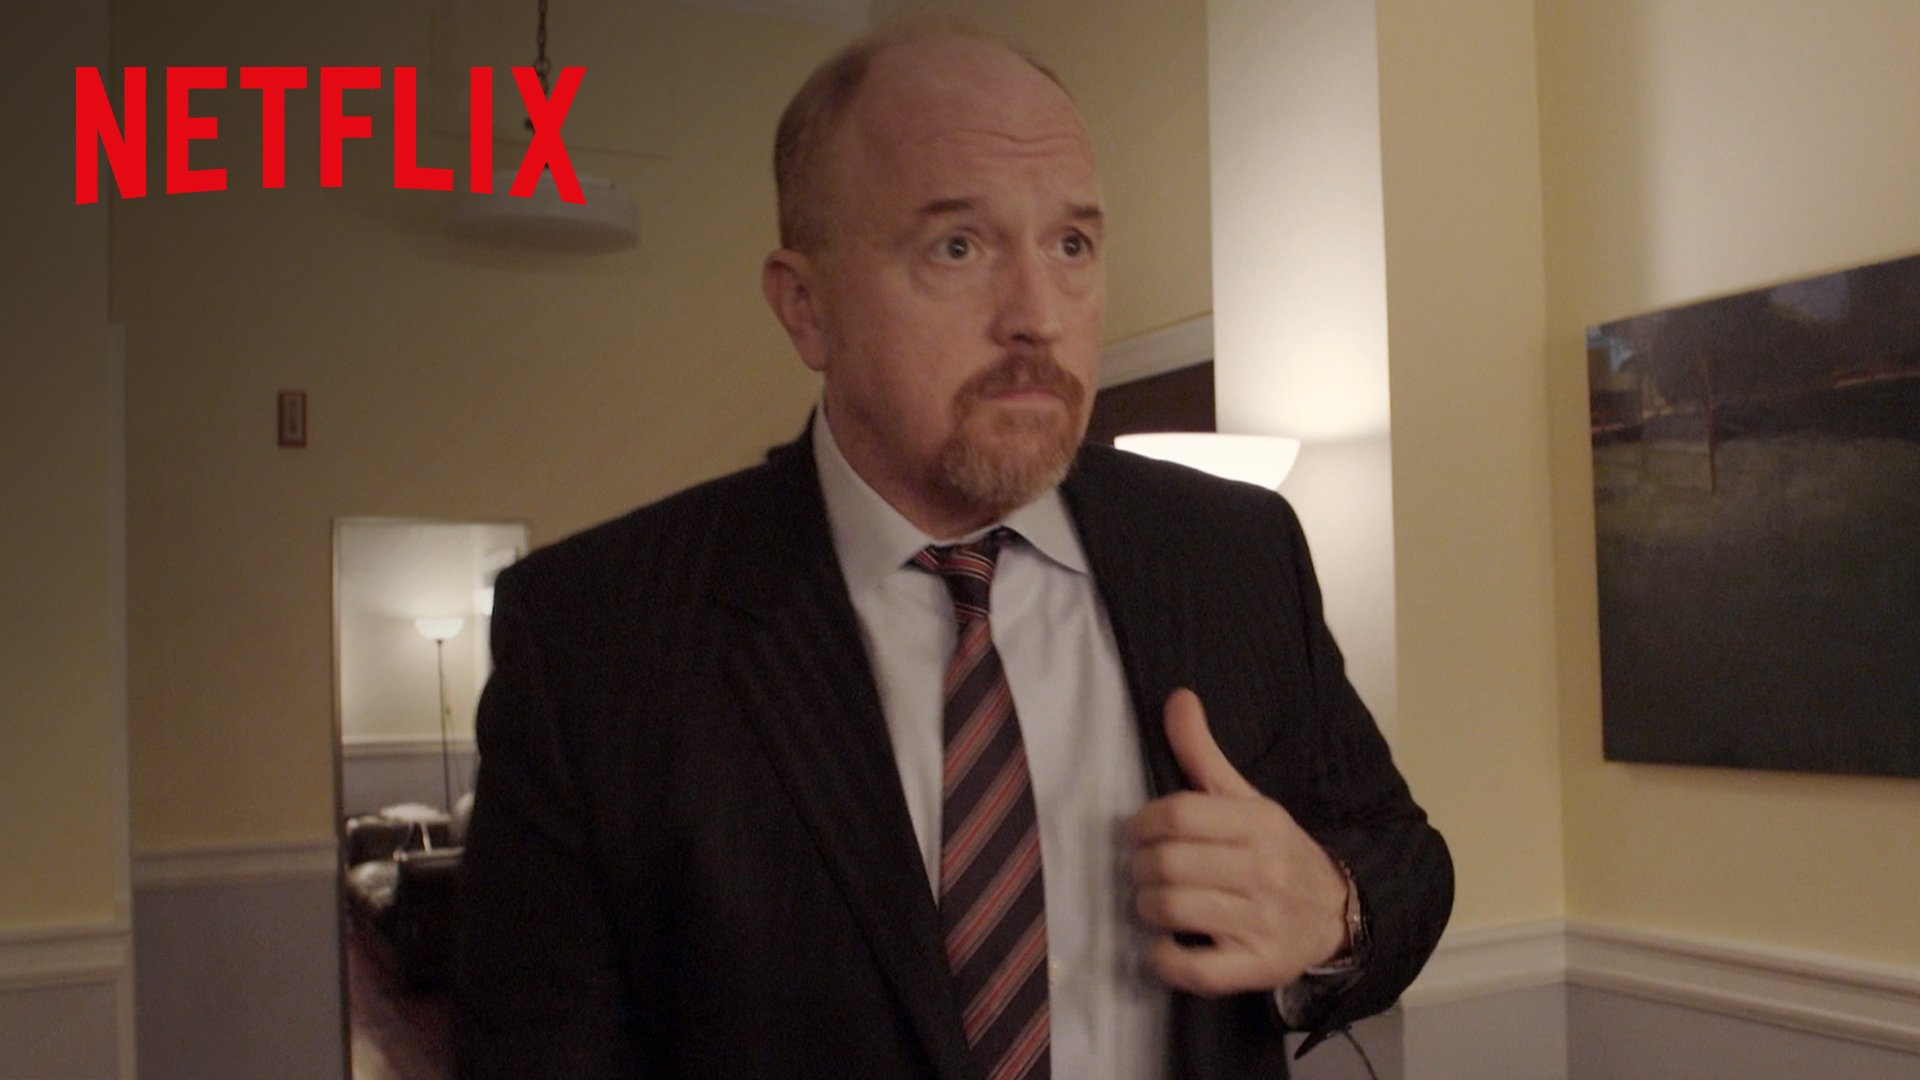 This is it. Louis C.K. 2017. https://t.co/b0gxnCdtFU